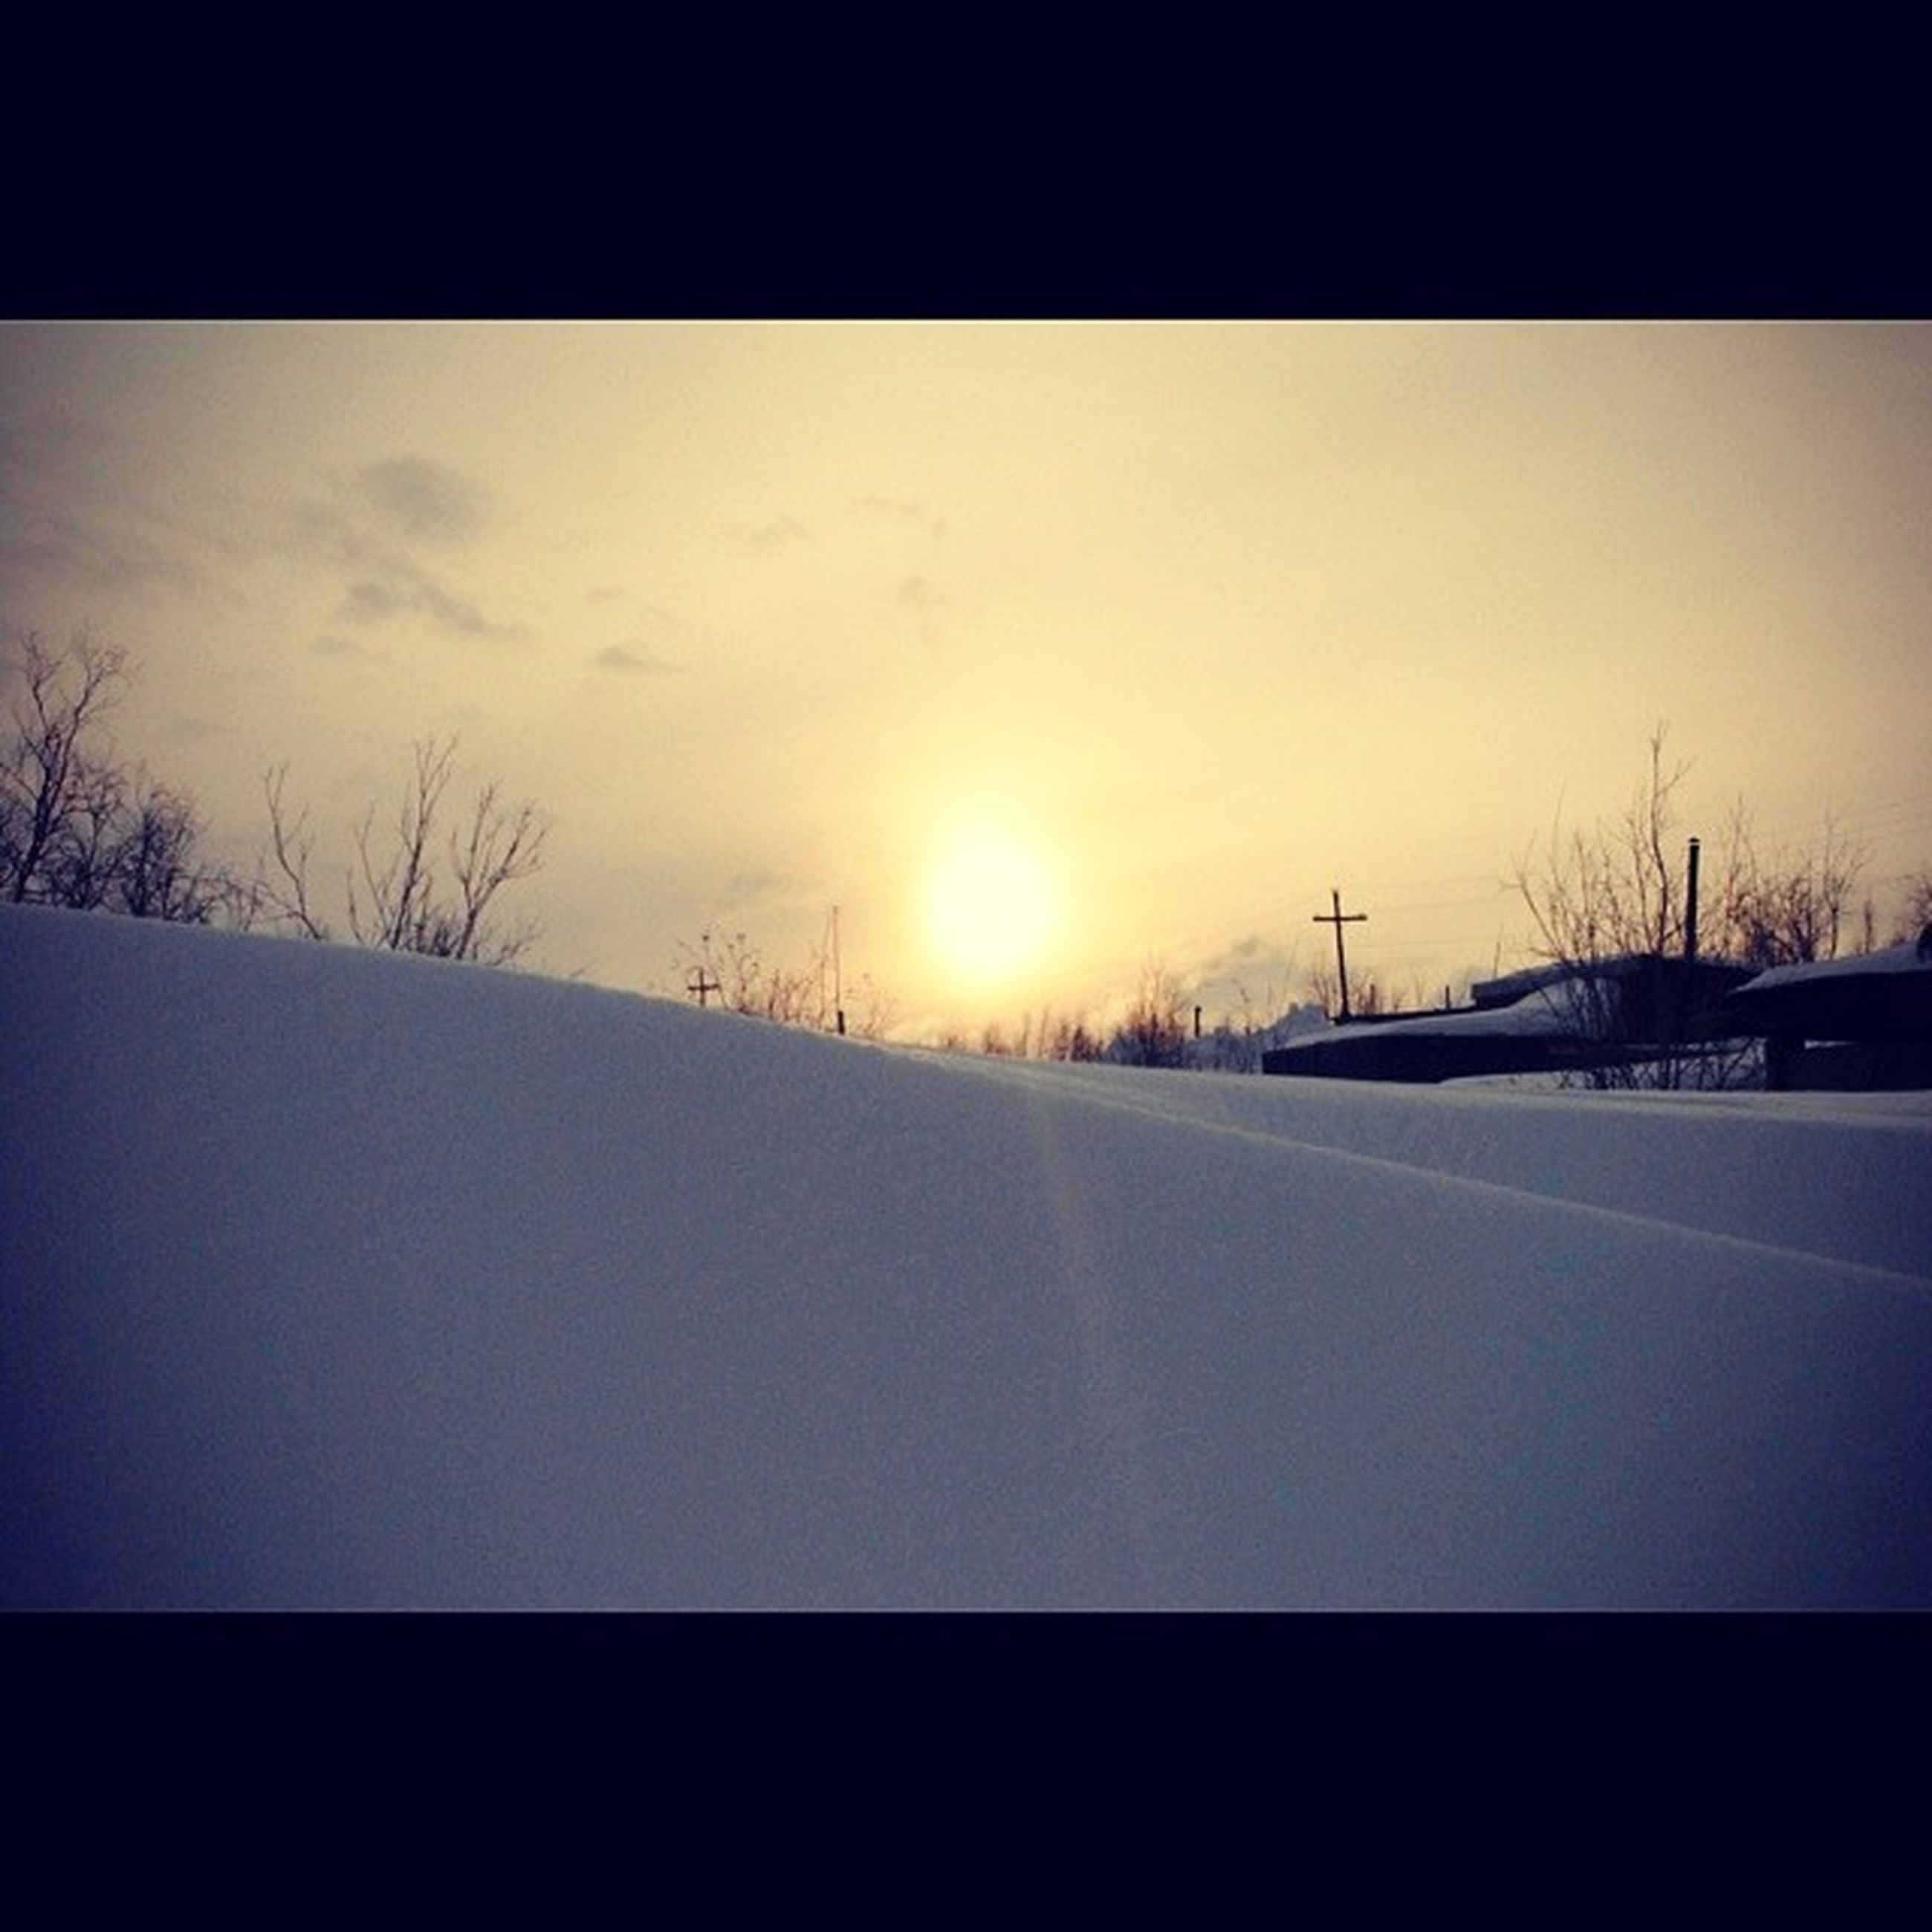 snow, winter, cold temperature, sun, transportation, road, season, sunset, weather, covering, sky, landscape, nature, the way forward, tranquil scene, sunlight, tranquility, scenics, beauty in nature, transfer print